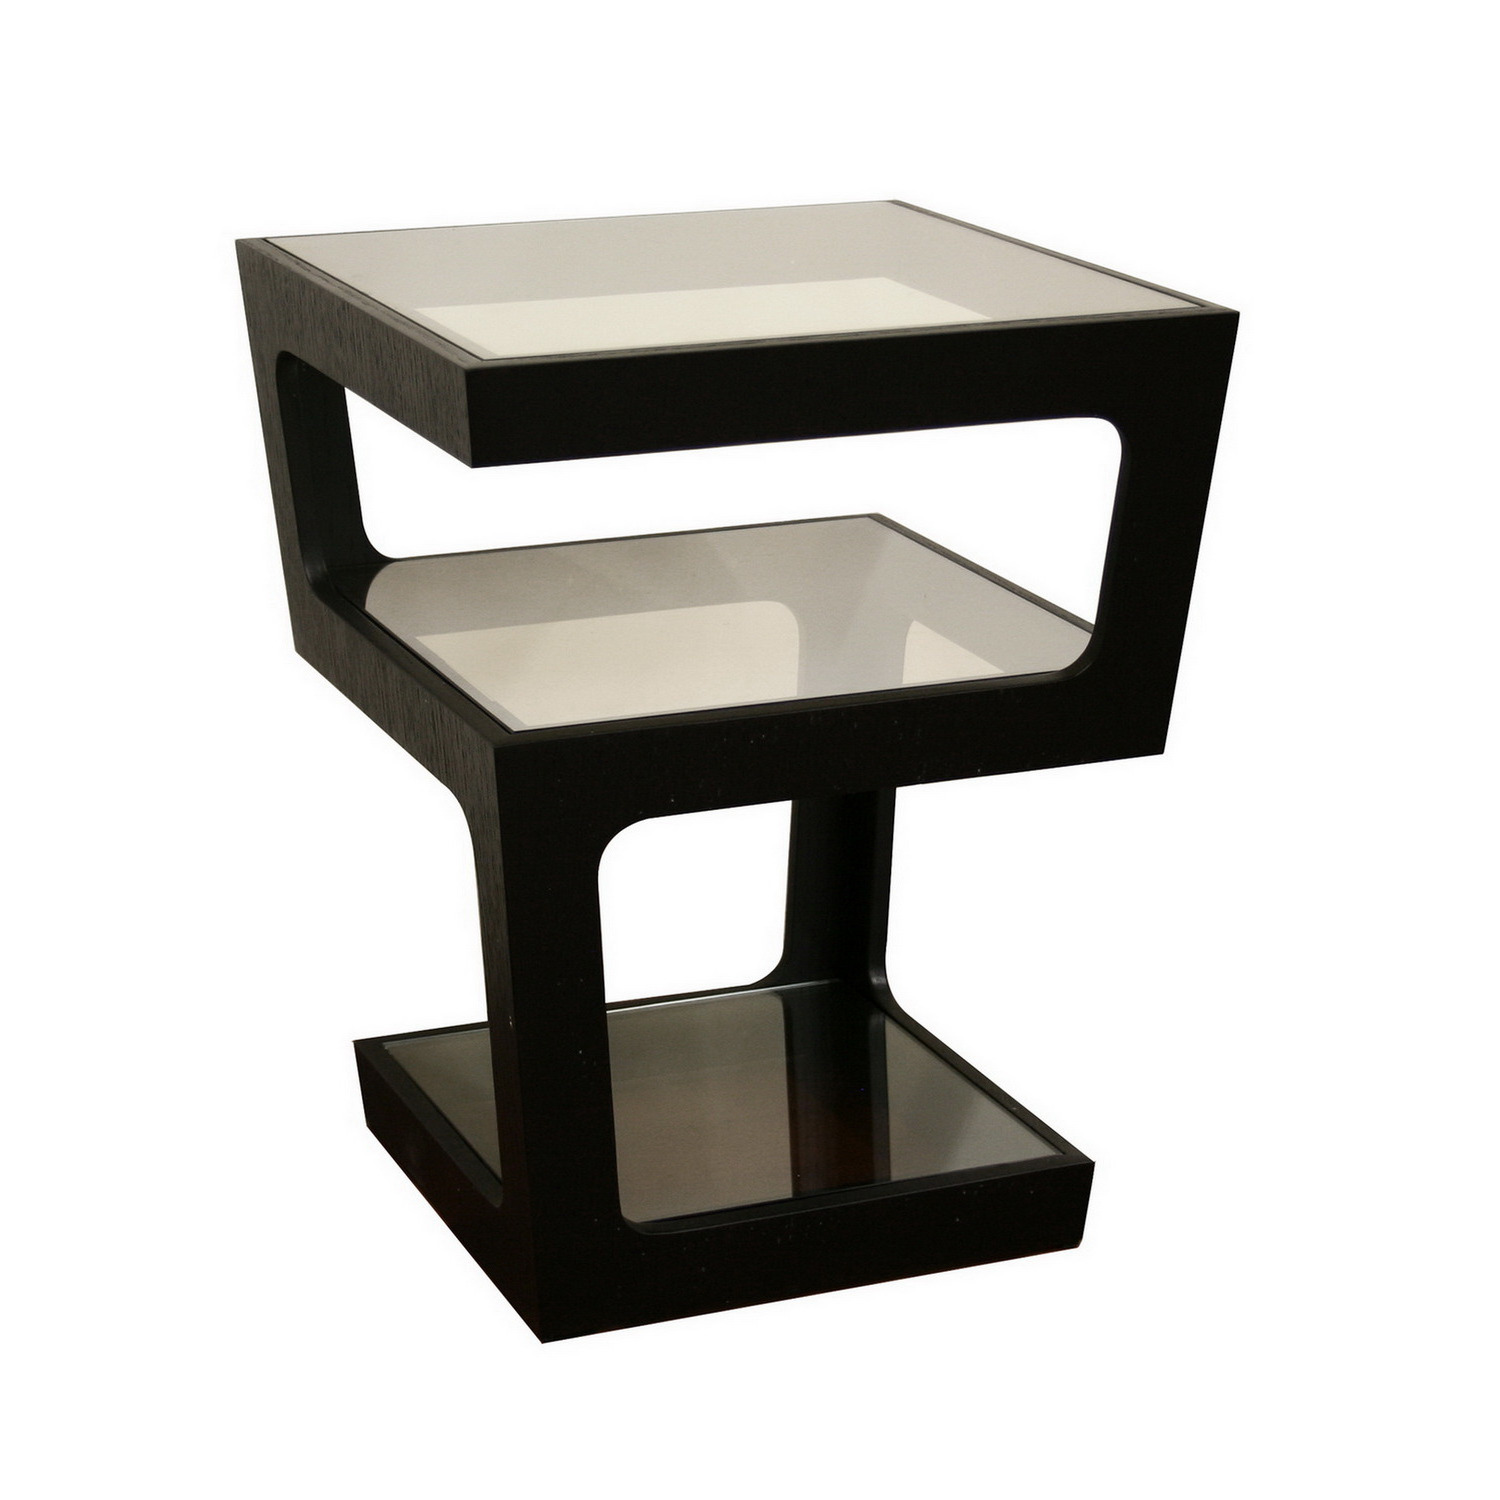 accent tables black urban home designing trends wooden end with glass top for small living room zane table ideas budget storage essentials slim console tall thin bar height and